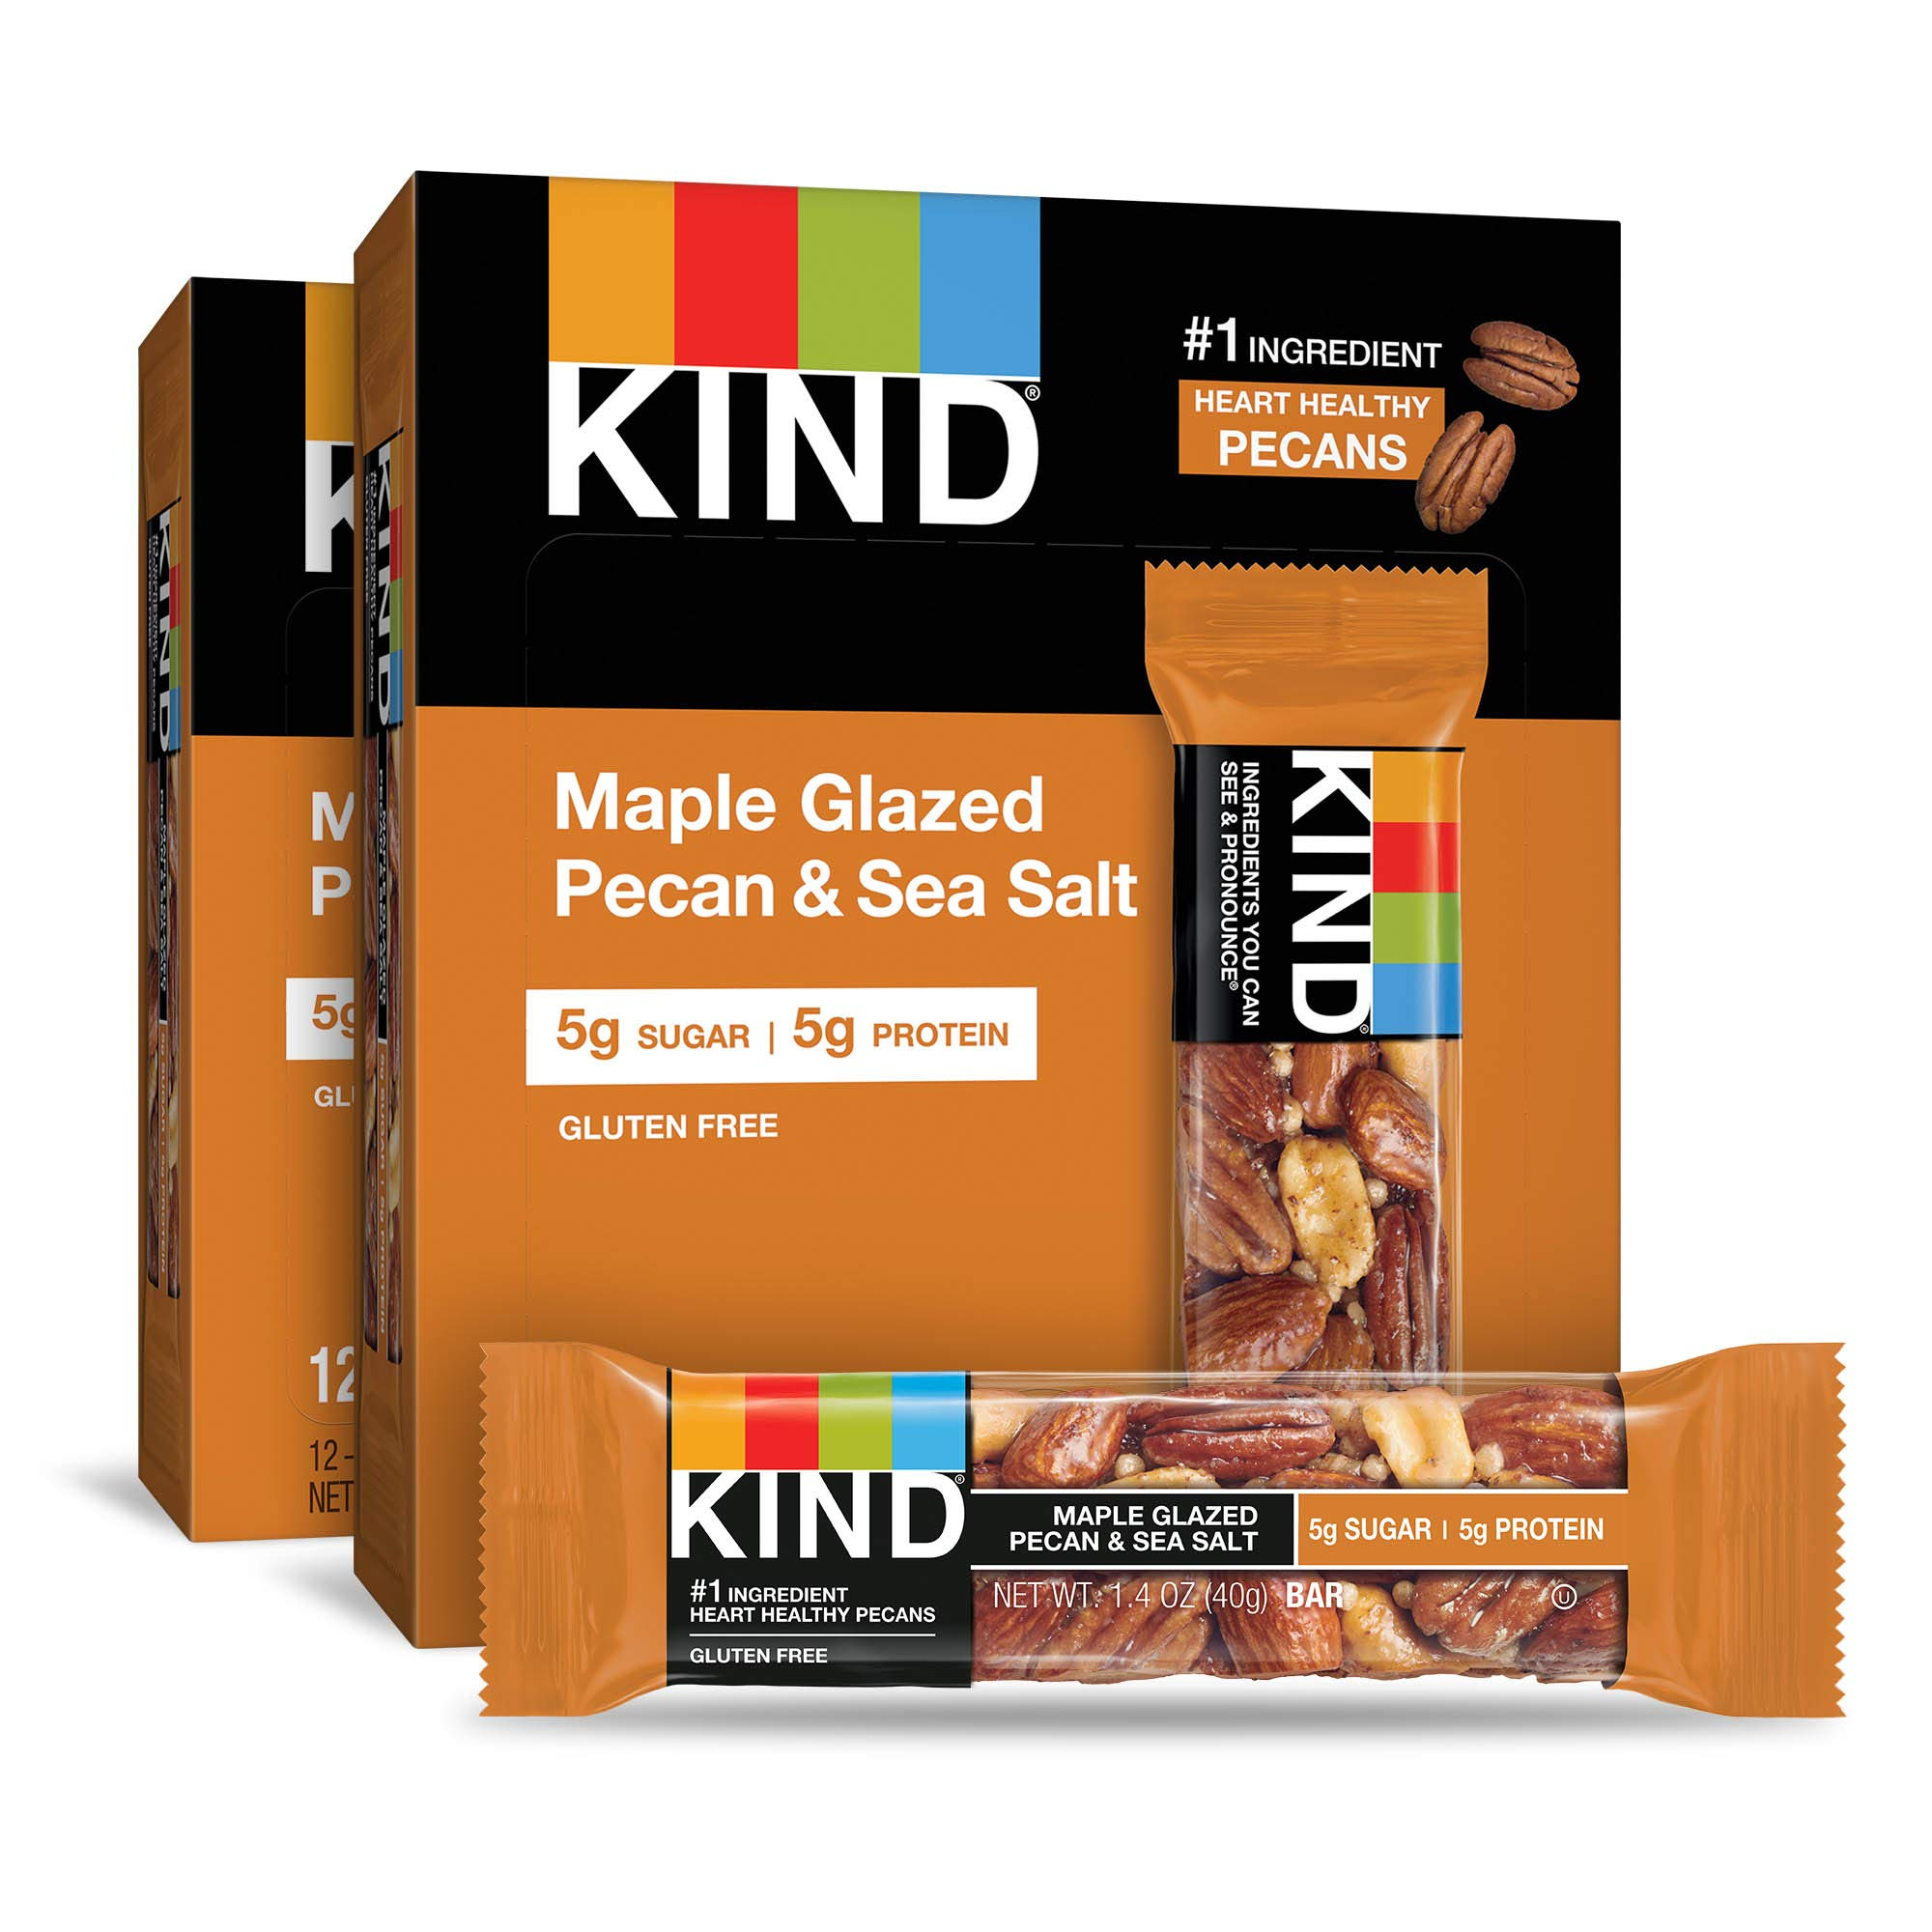 KIND Bars, Maple Glazed Pecan and Sea Salt, Gluten Free, Low Sugar, 1.4 Ounce Bars, 24 Count by KIND